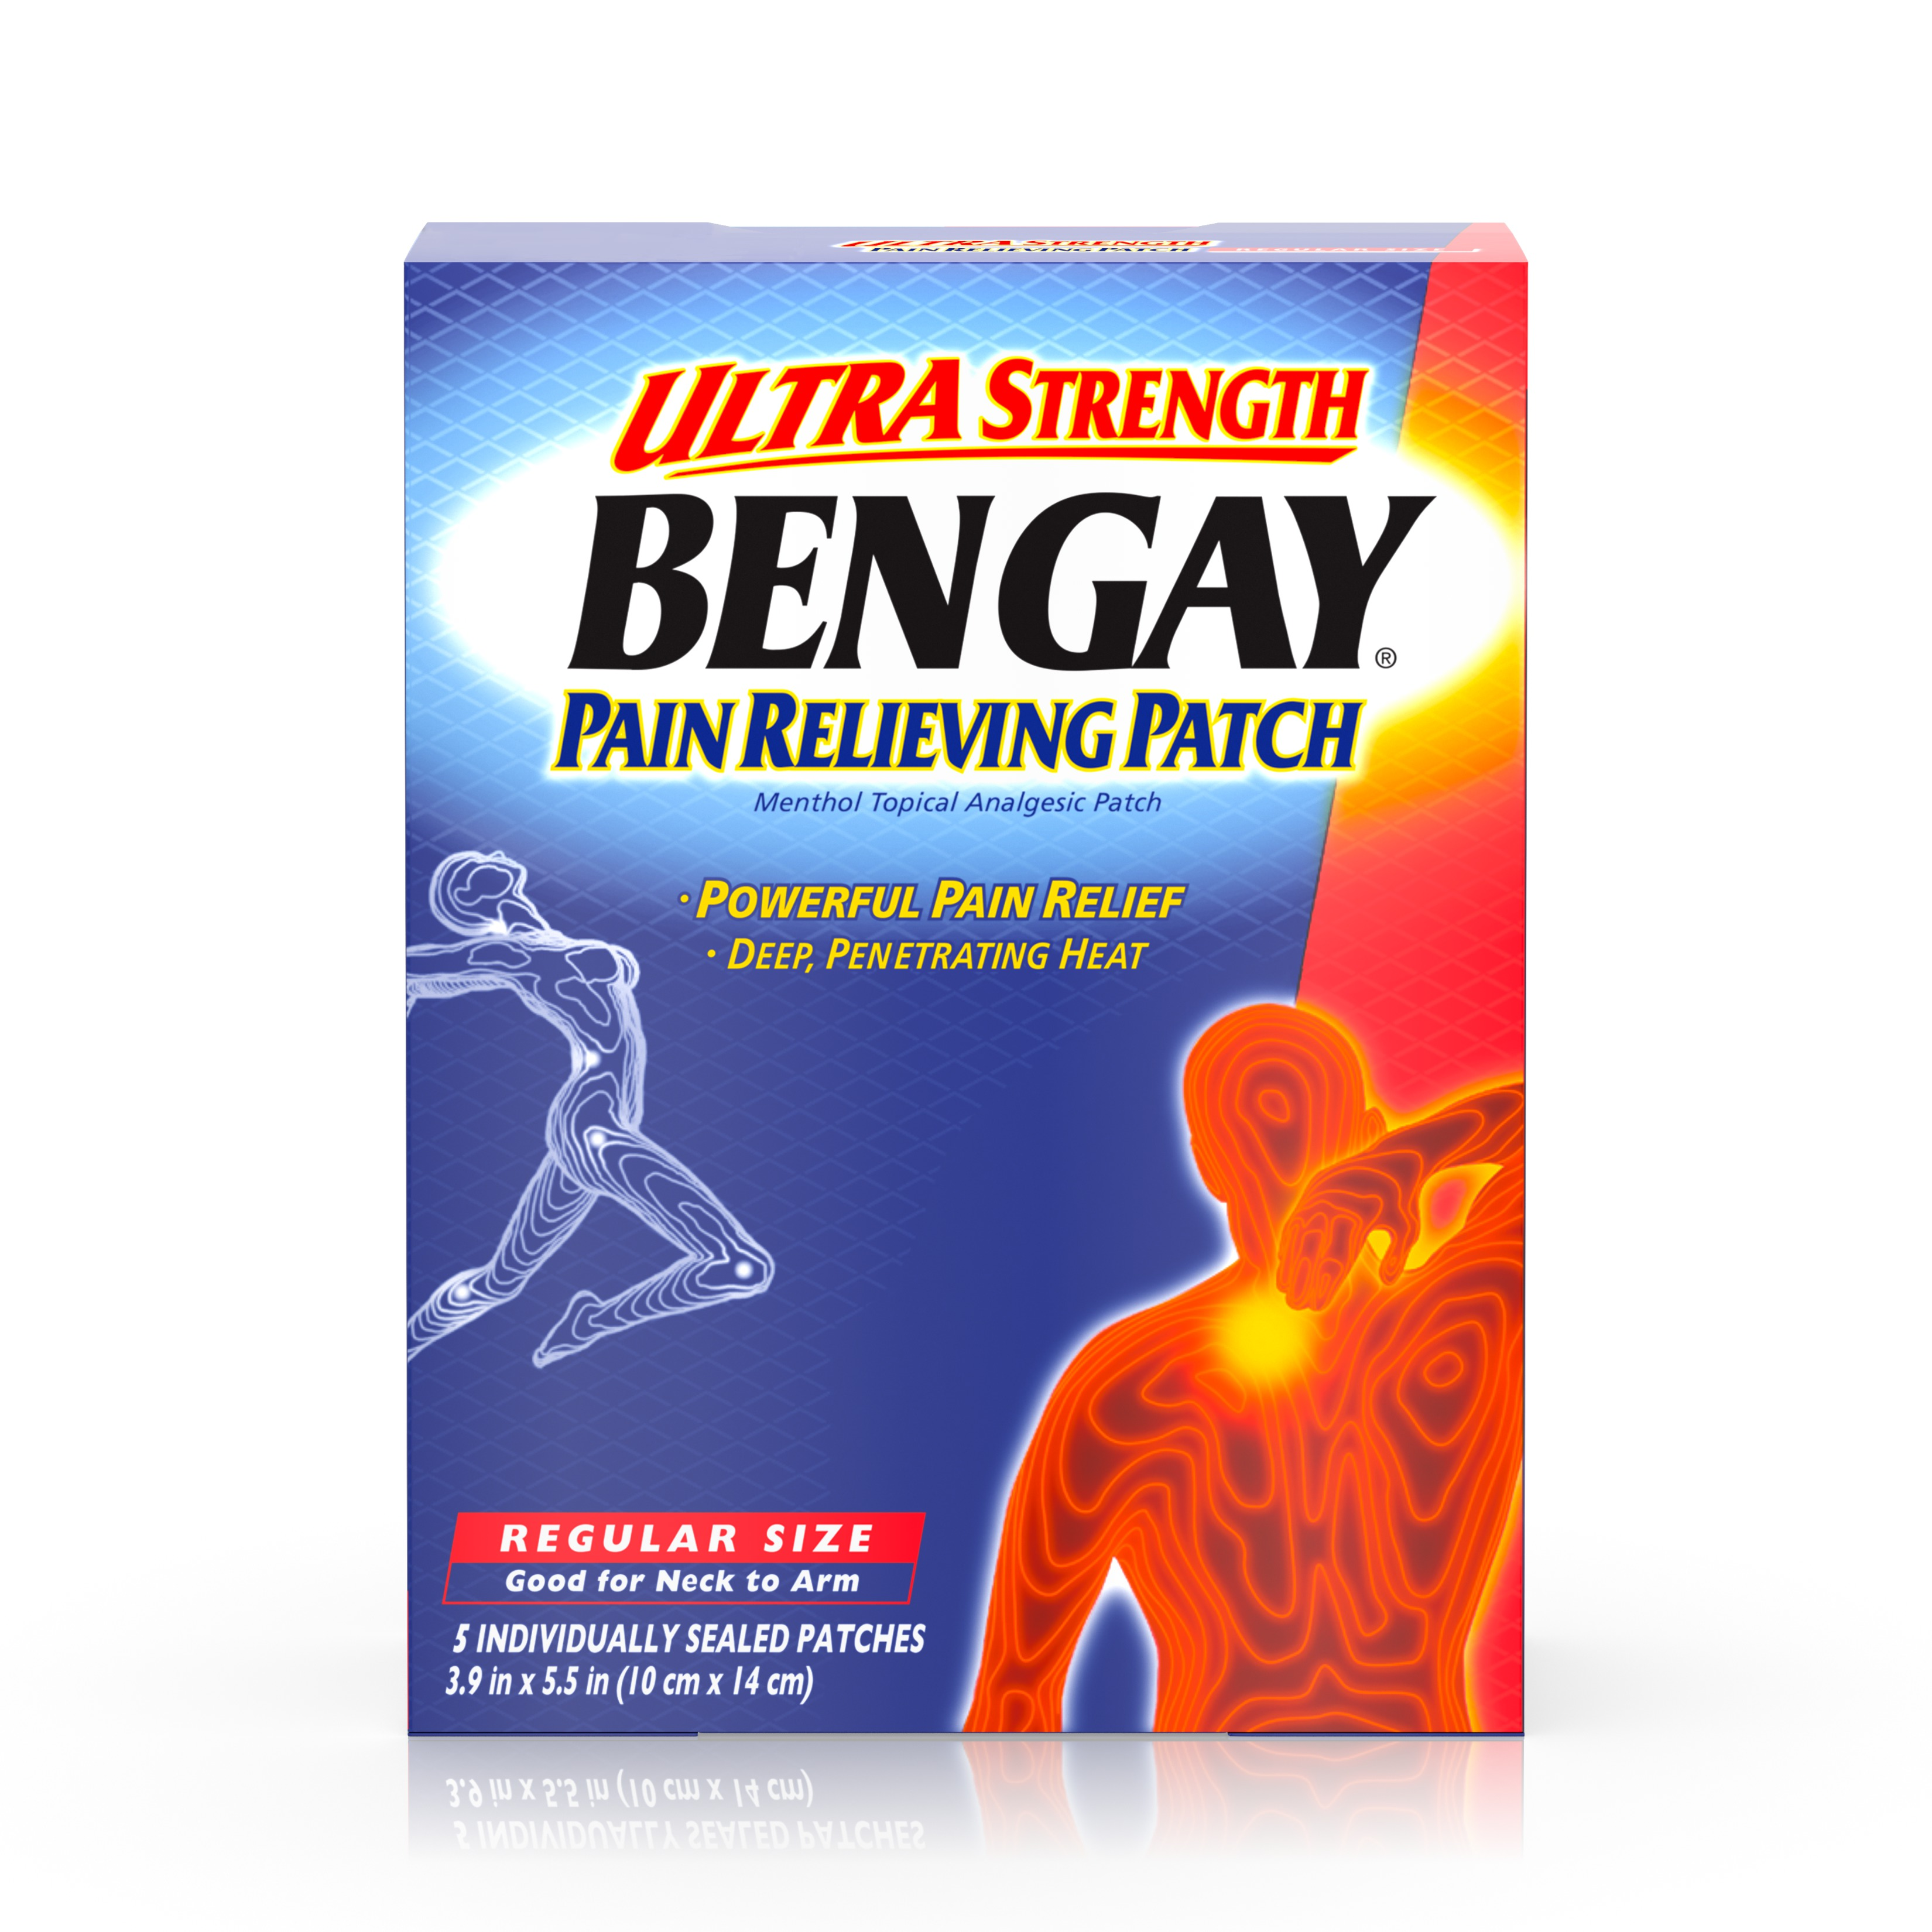 Ultra Strength Bengay Pain Relief Patch, 3.9 x 5.5 in, 5 Count